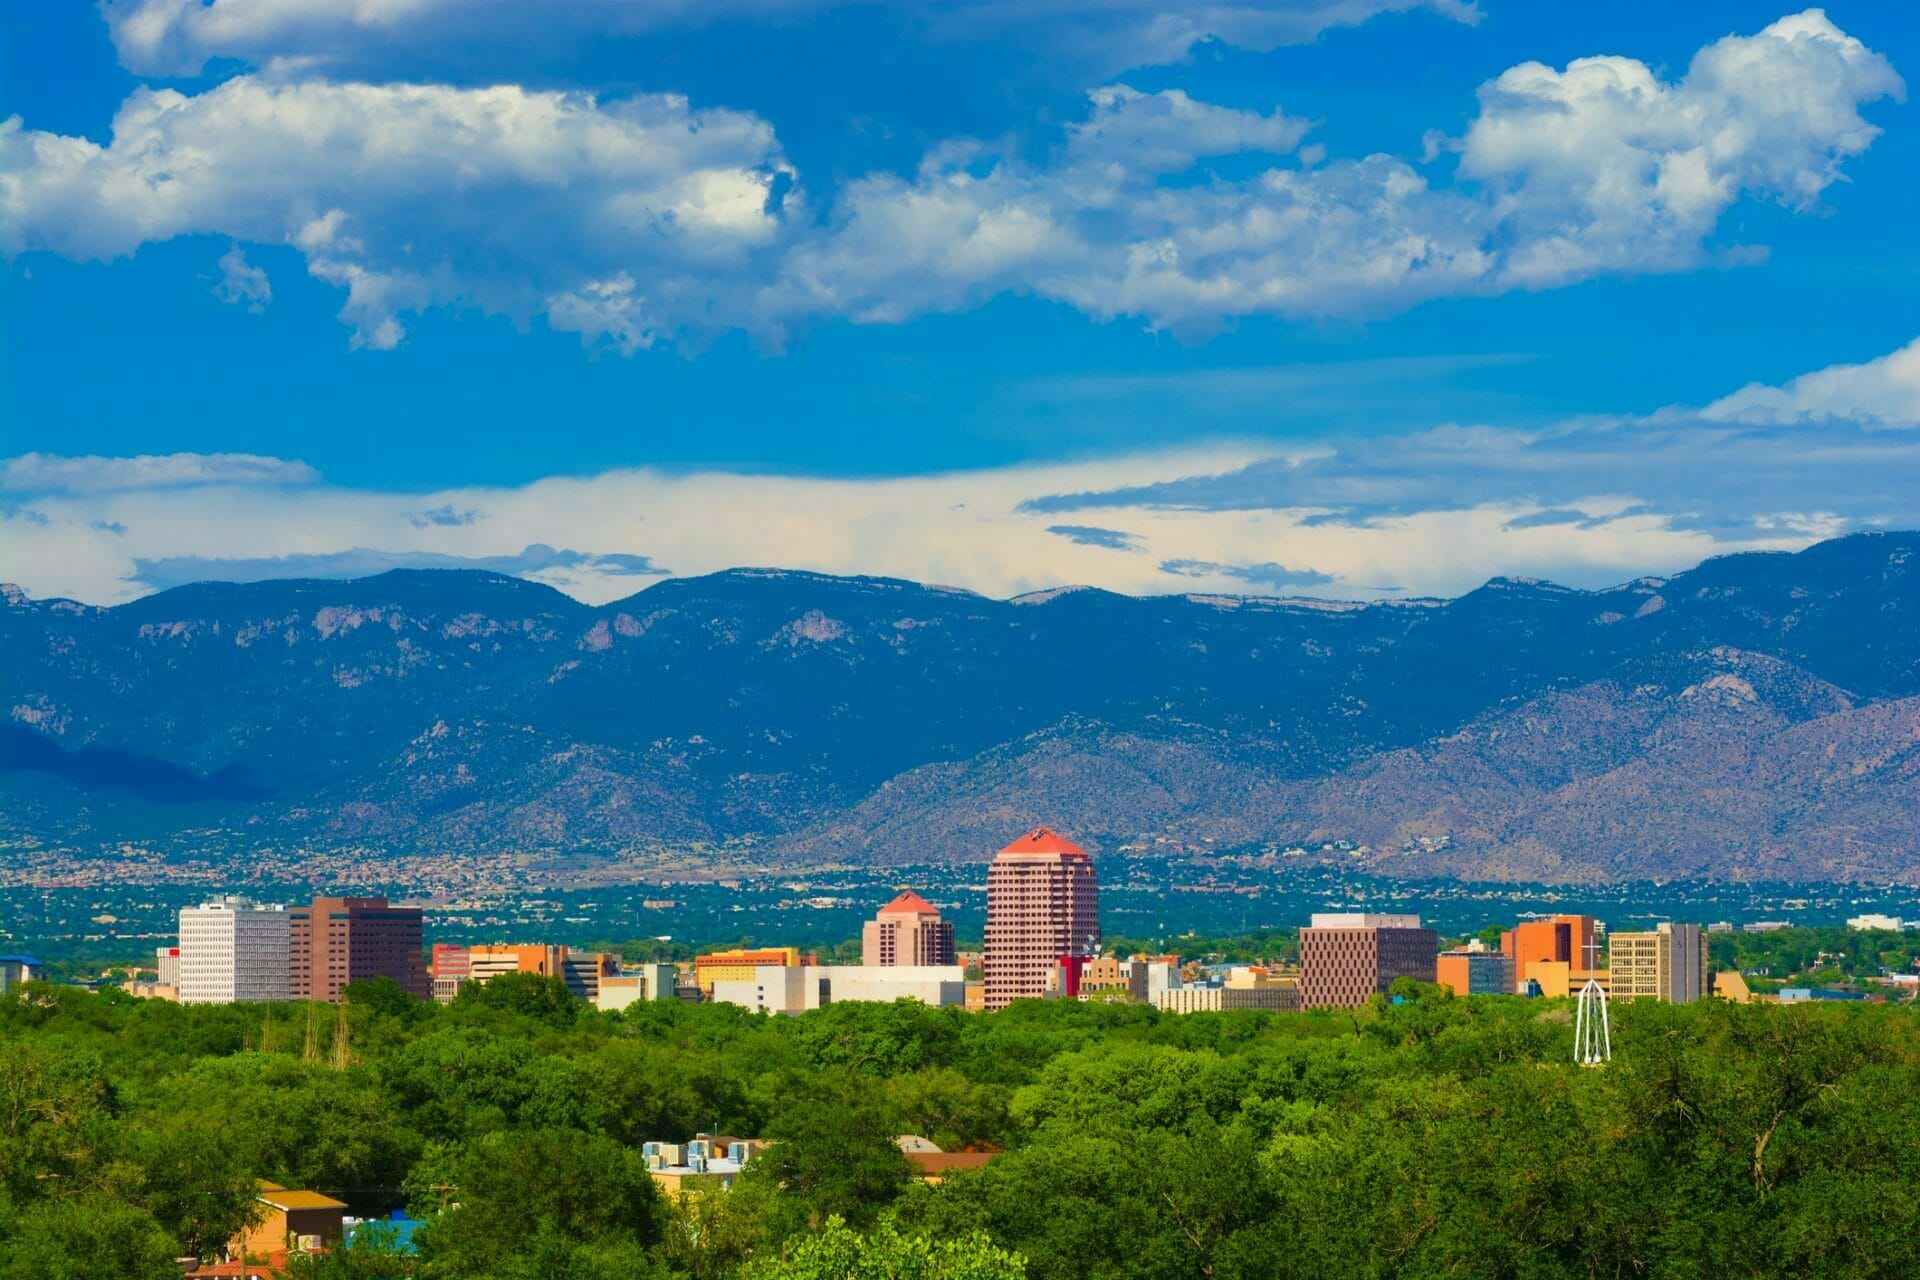 RealWealth market image featuring Albuquerque skyline, mountains, and clouds